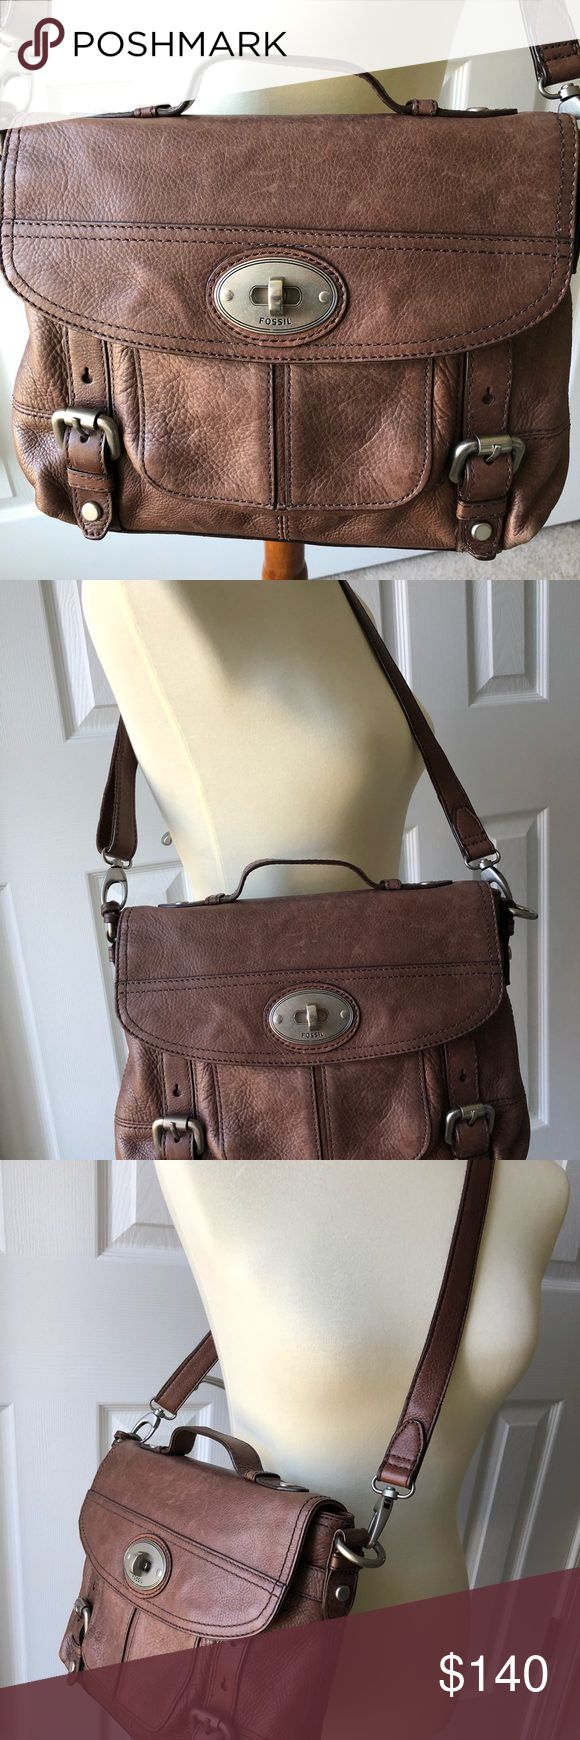 Fossil Vintage Saddle Leather Satchel/Crossbody Beautiful vintage saddle leather Fossil satchel/crossbody in excellent condition. The leather shows ageing but is common in this type of leather, it just adds to its beauty. No stains or damage. Comes from a smoke free home. Fossil Bags Satchels